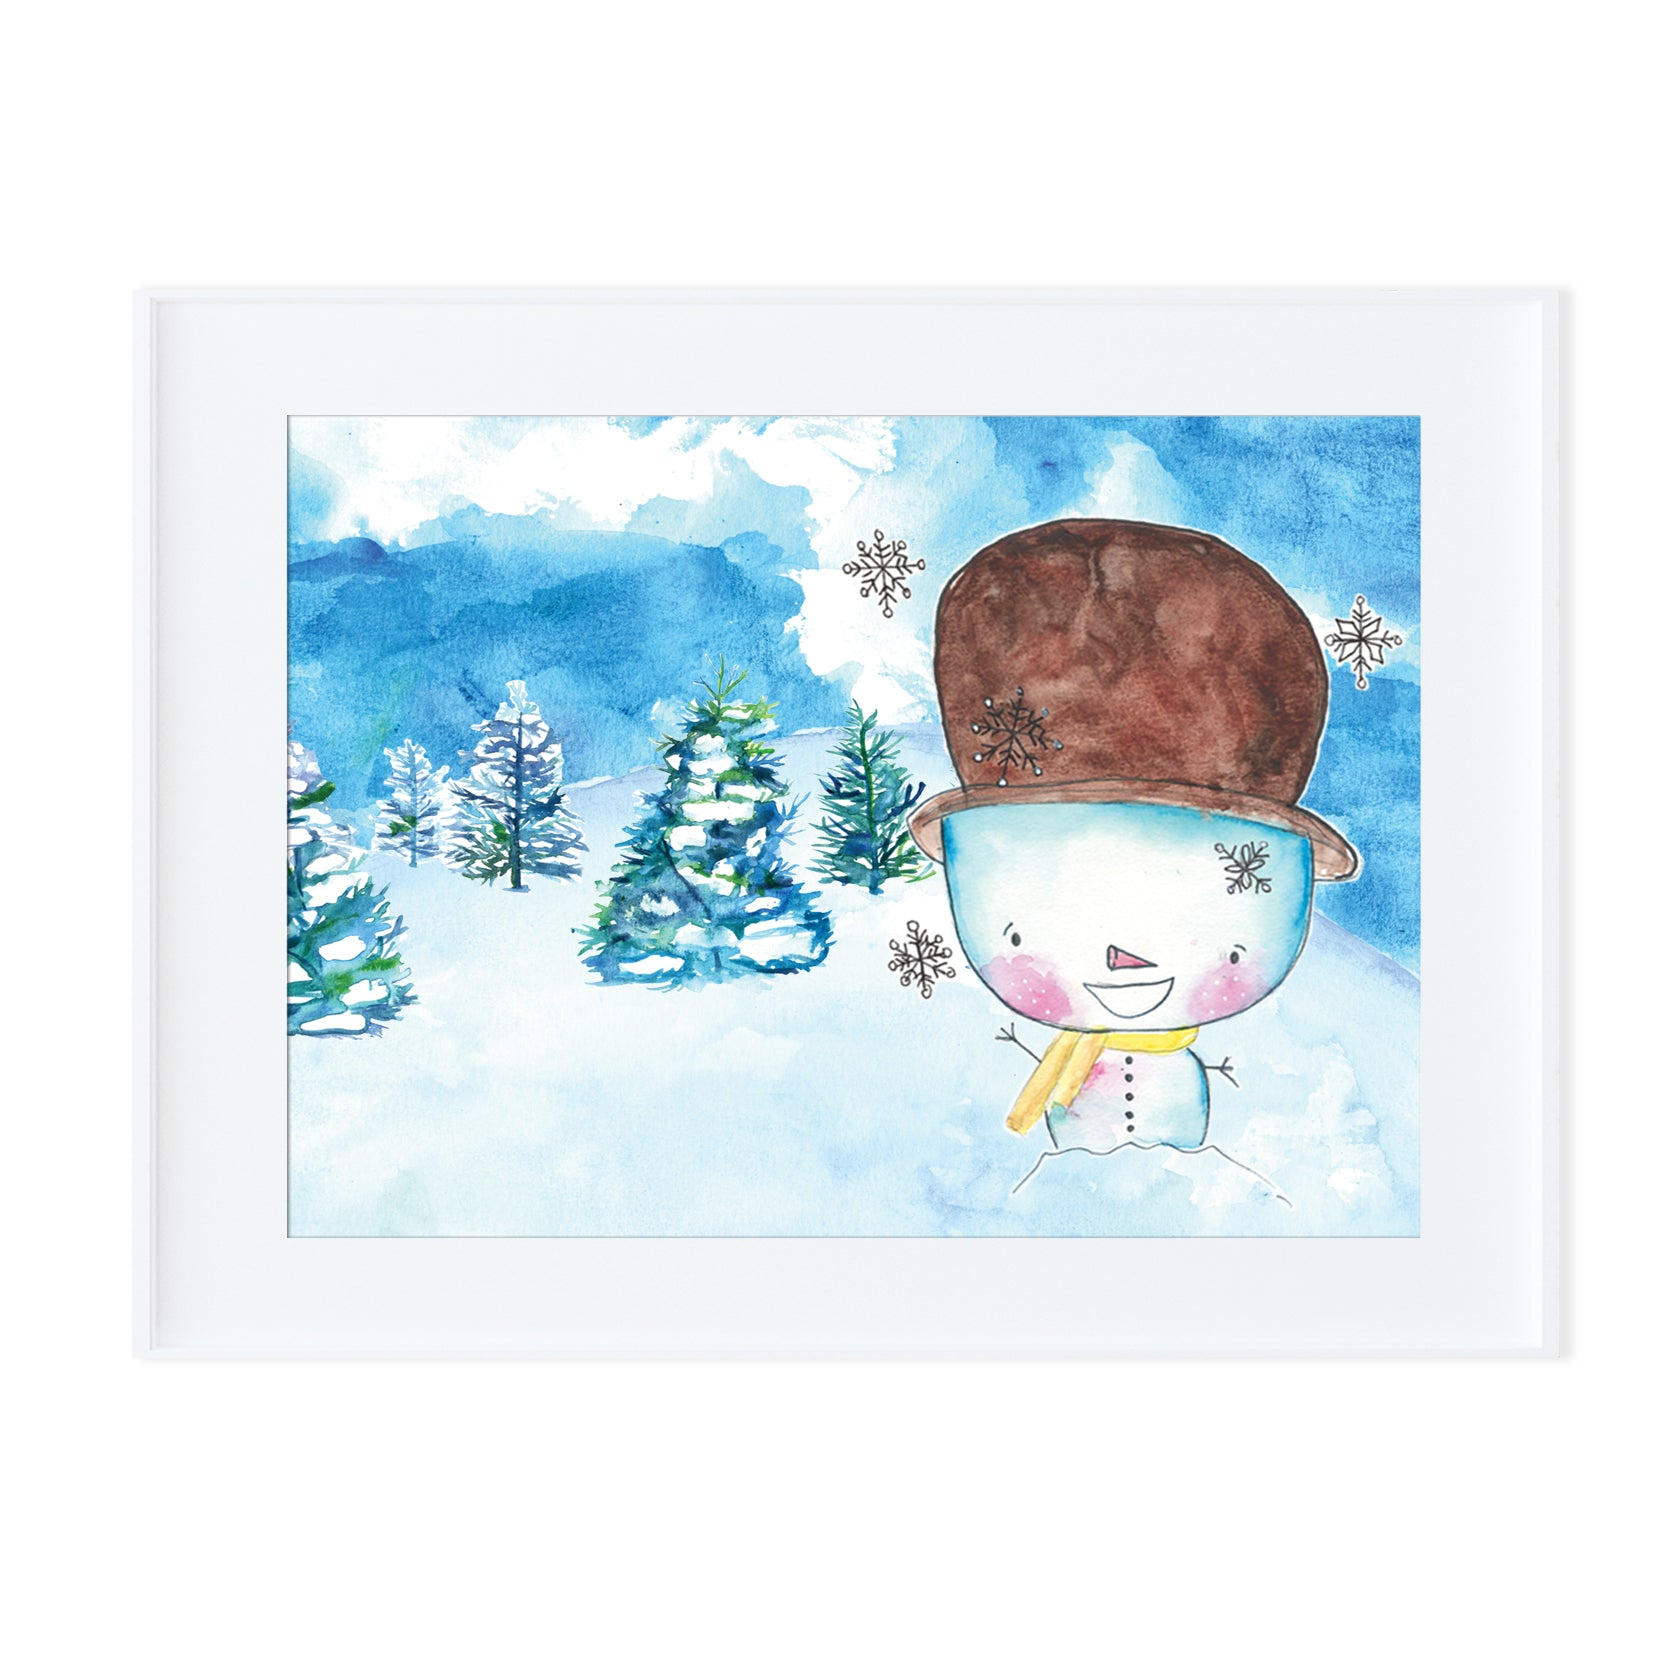 Snowman 5-Prints-Morning Blossom Studio